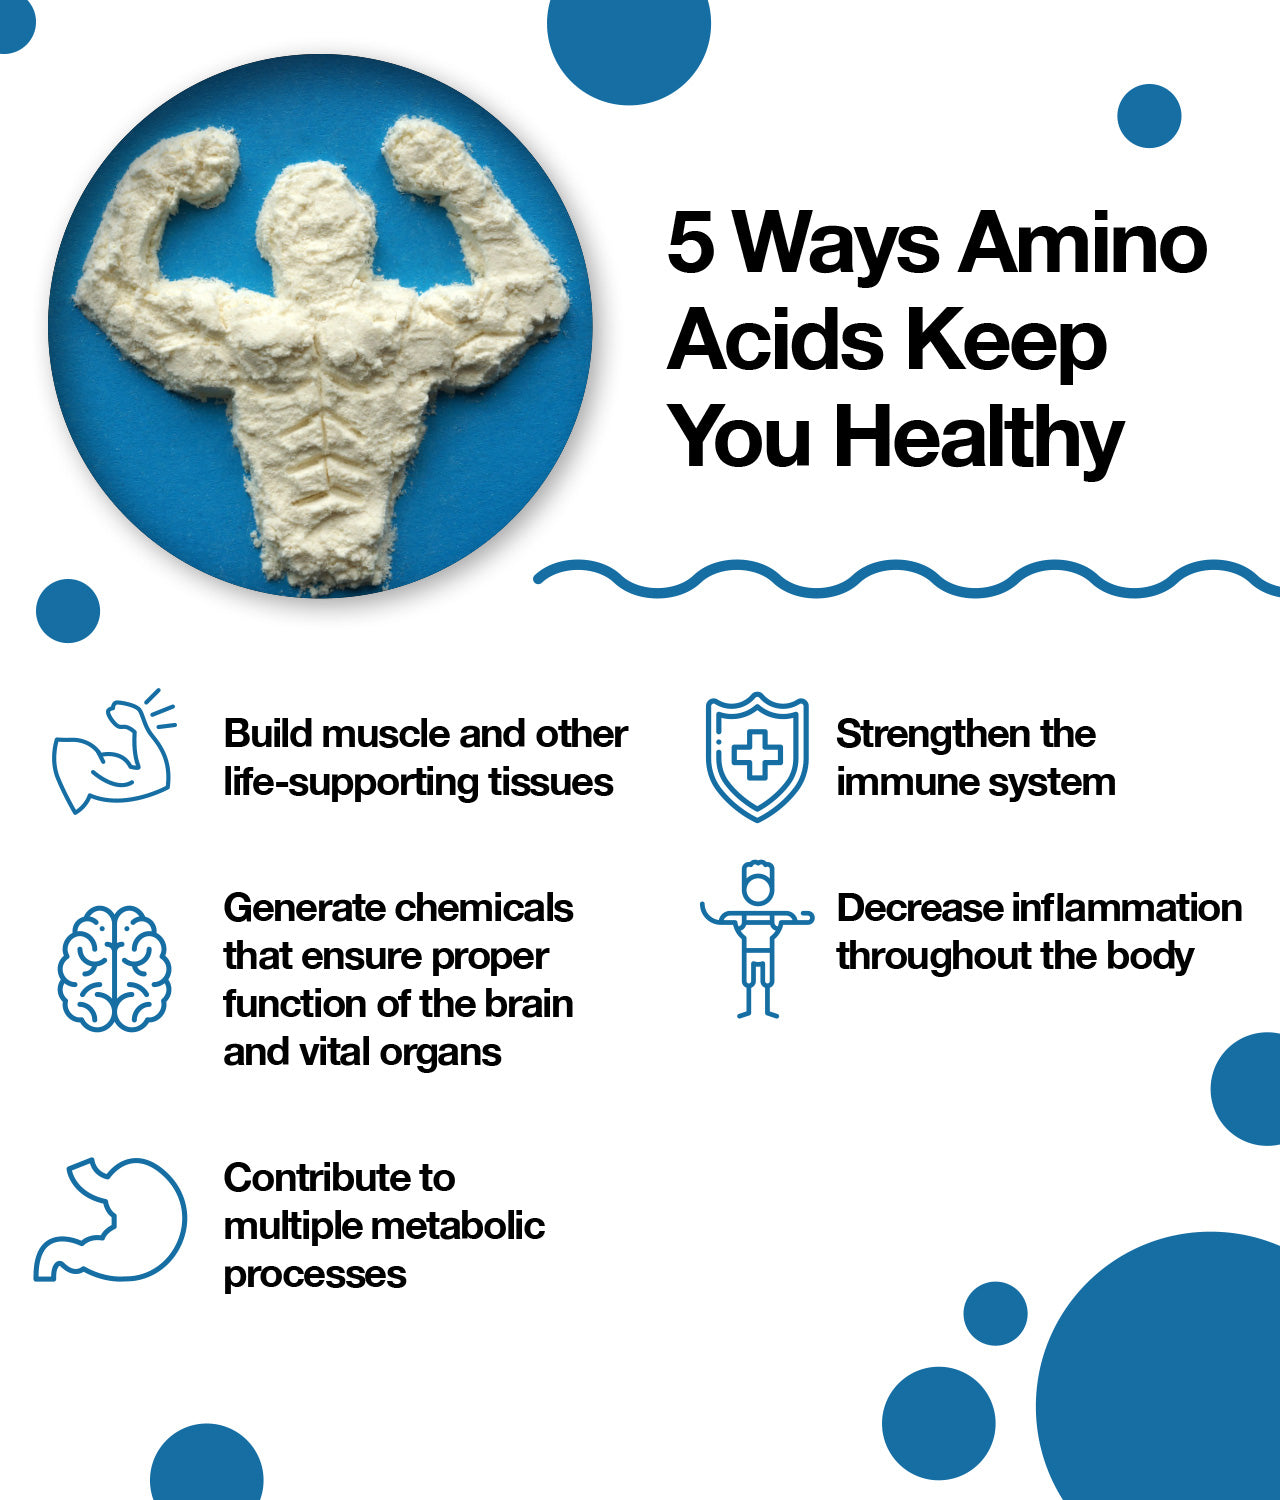 5 ways amino acids keep you healthy